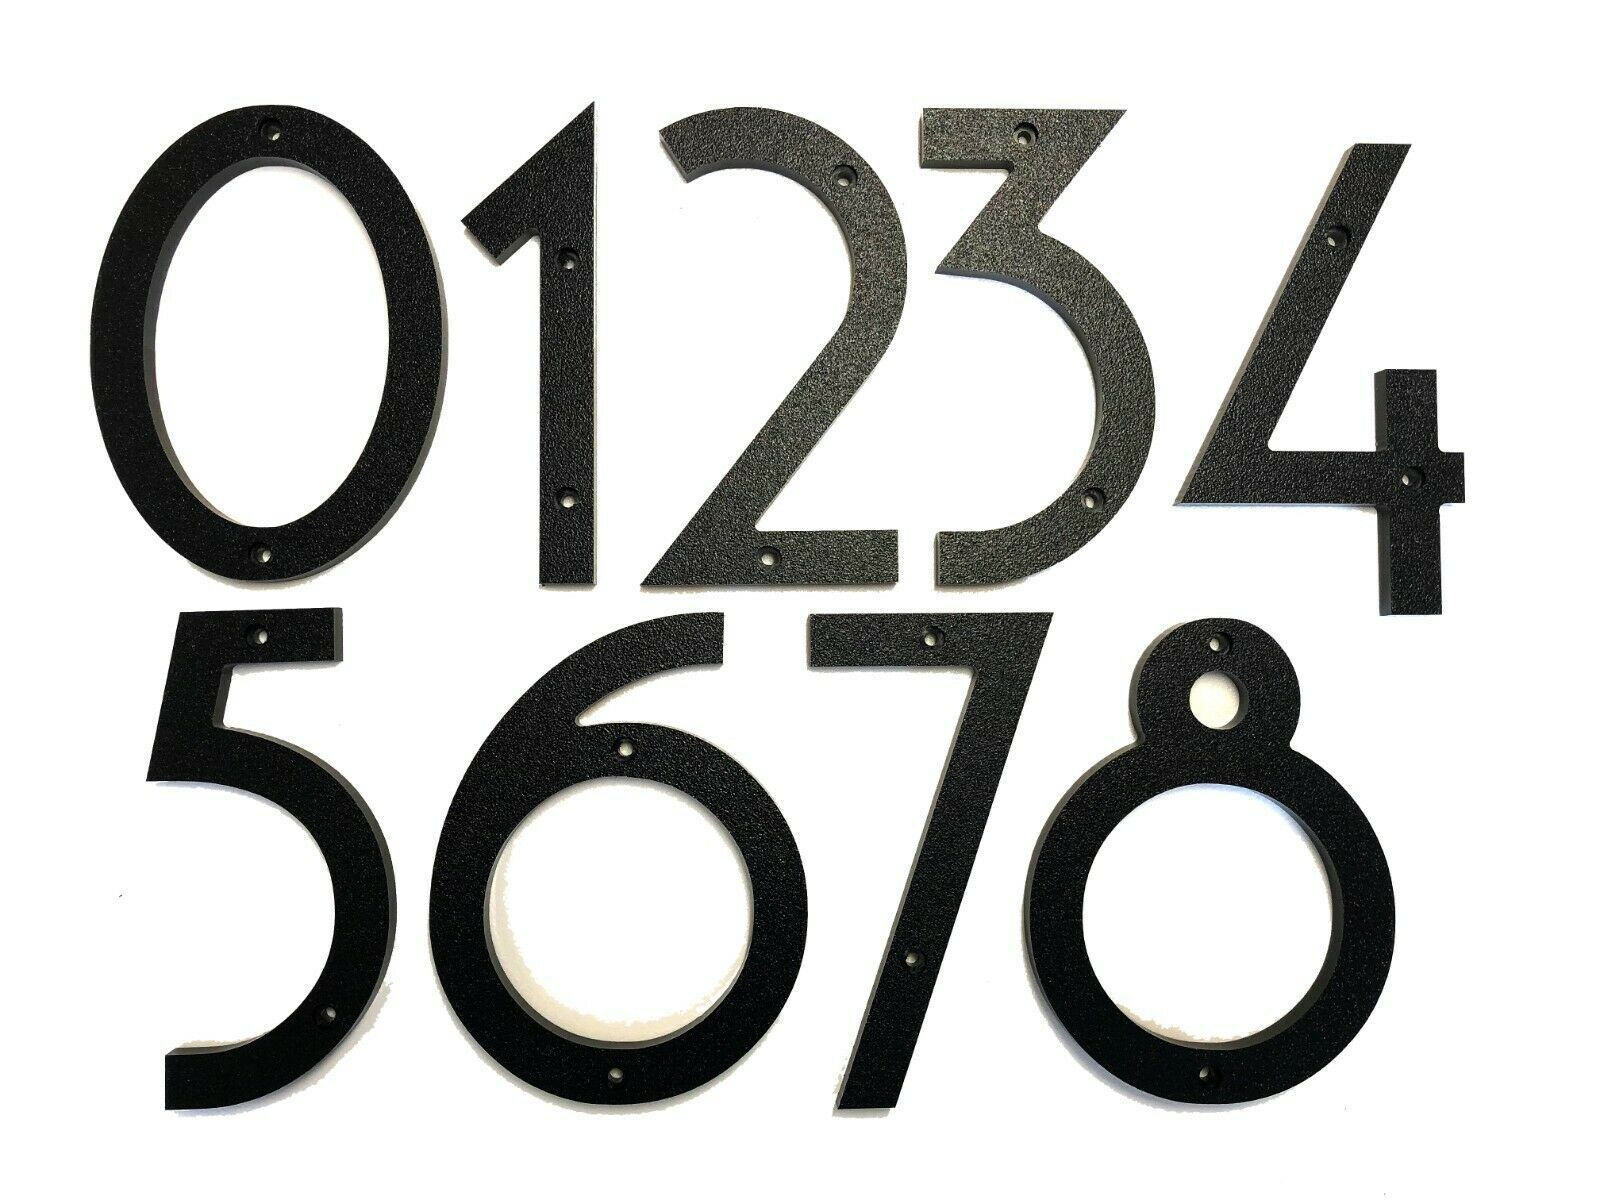 5 inch Art Deco House Numbers, Black Plastic with Hardware Included